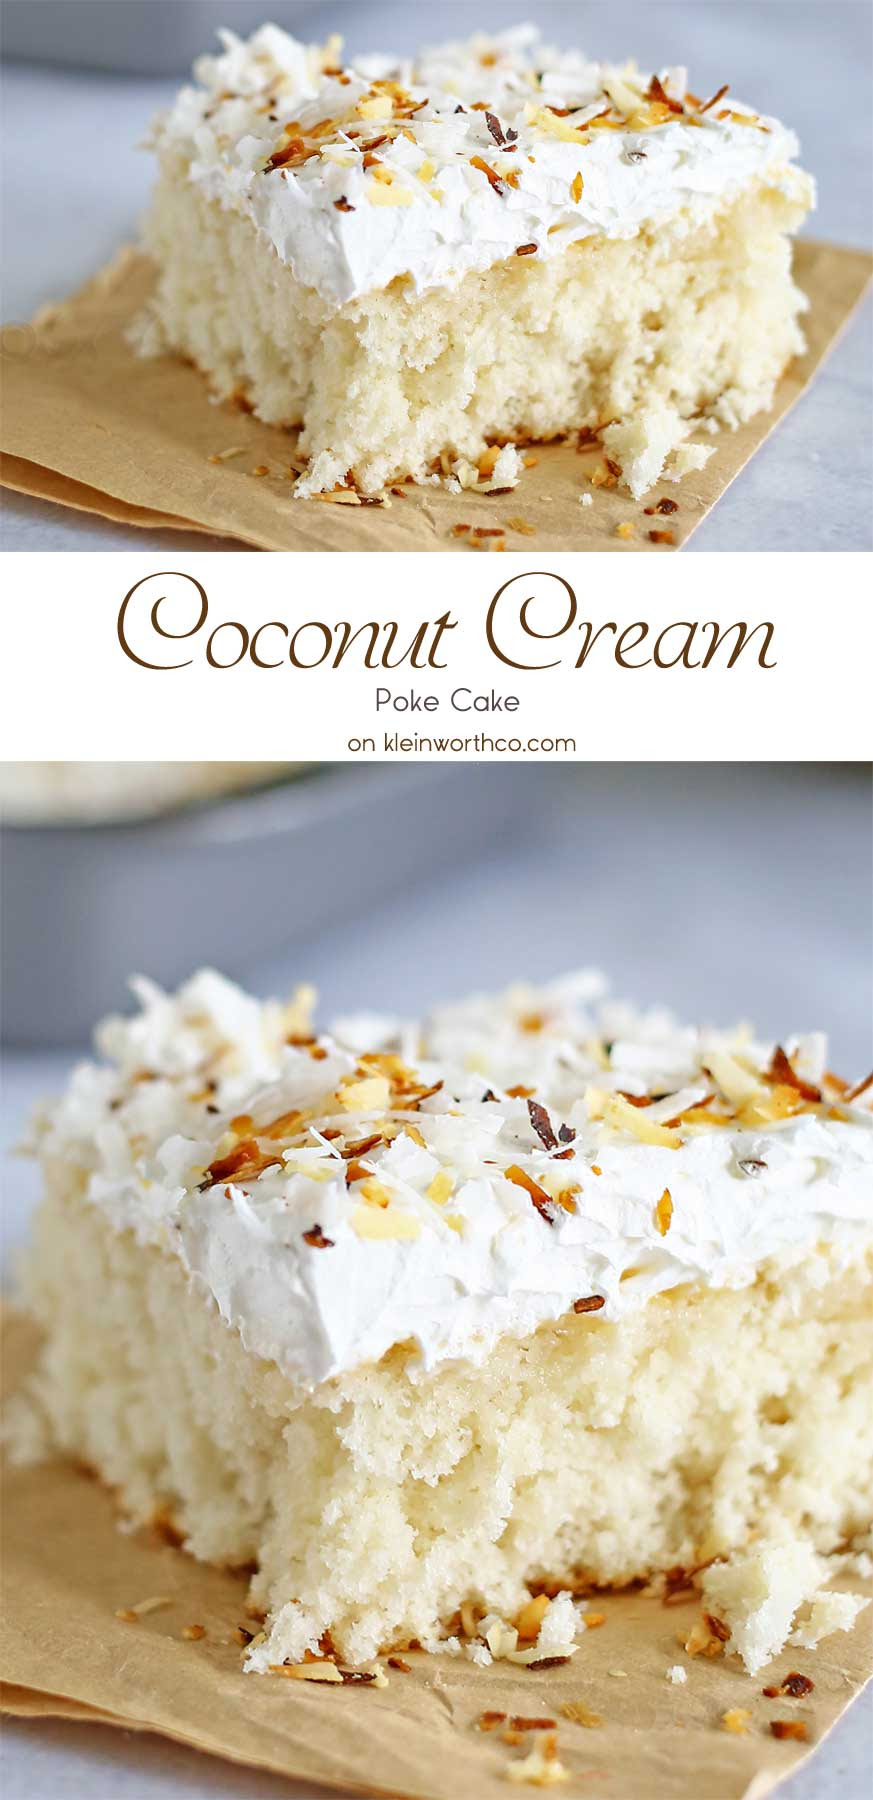 Coconut Cream Cake - Kleinworth & Co